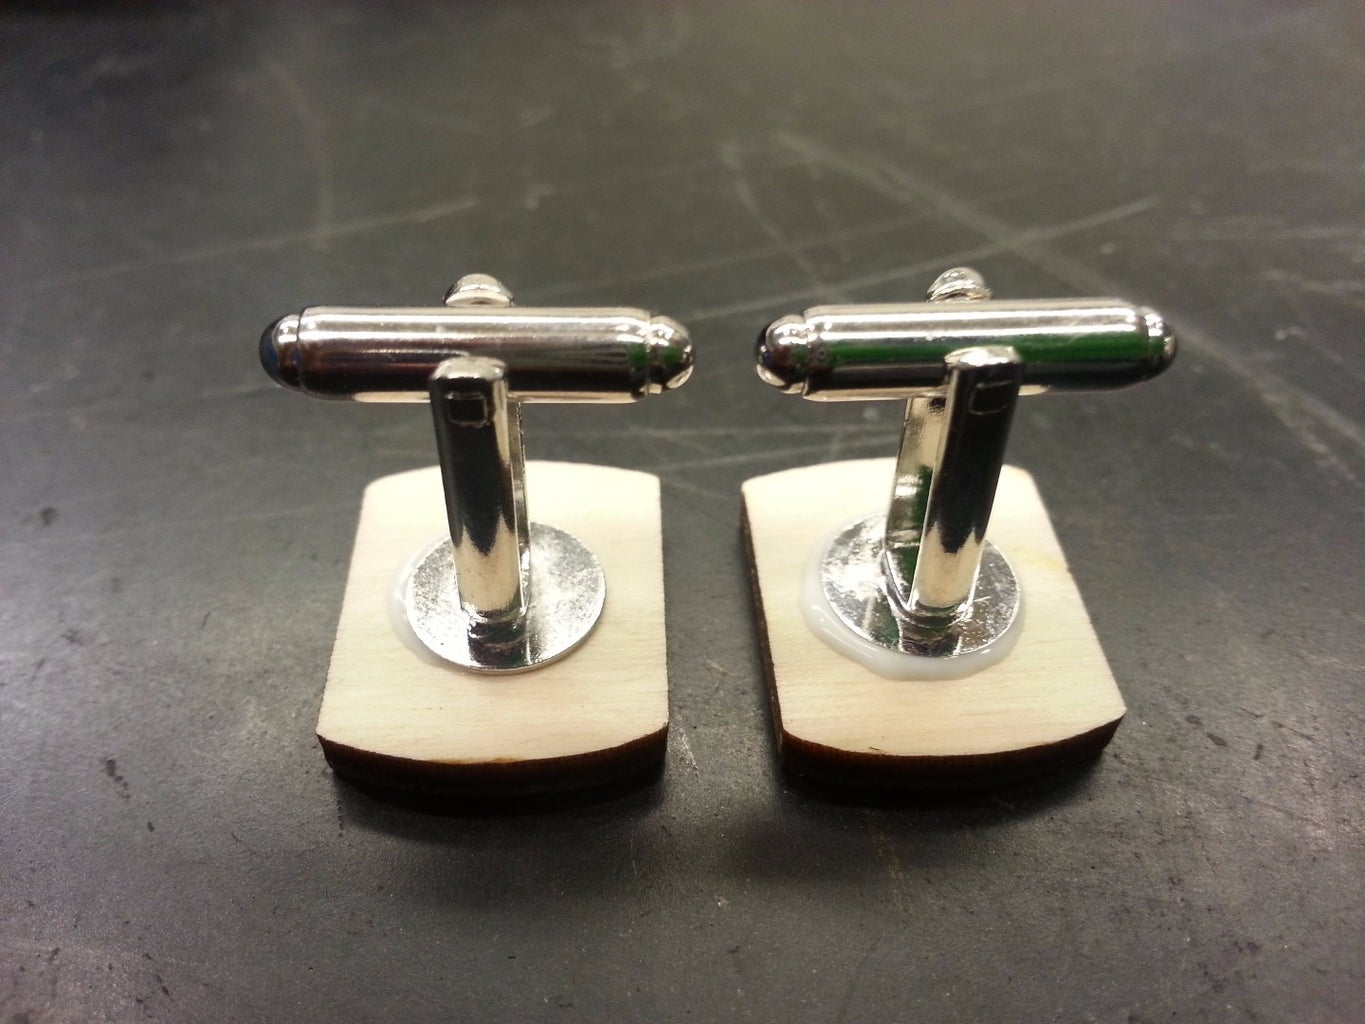 Gluing the Cufflink to Laser Pieces